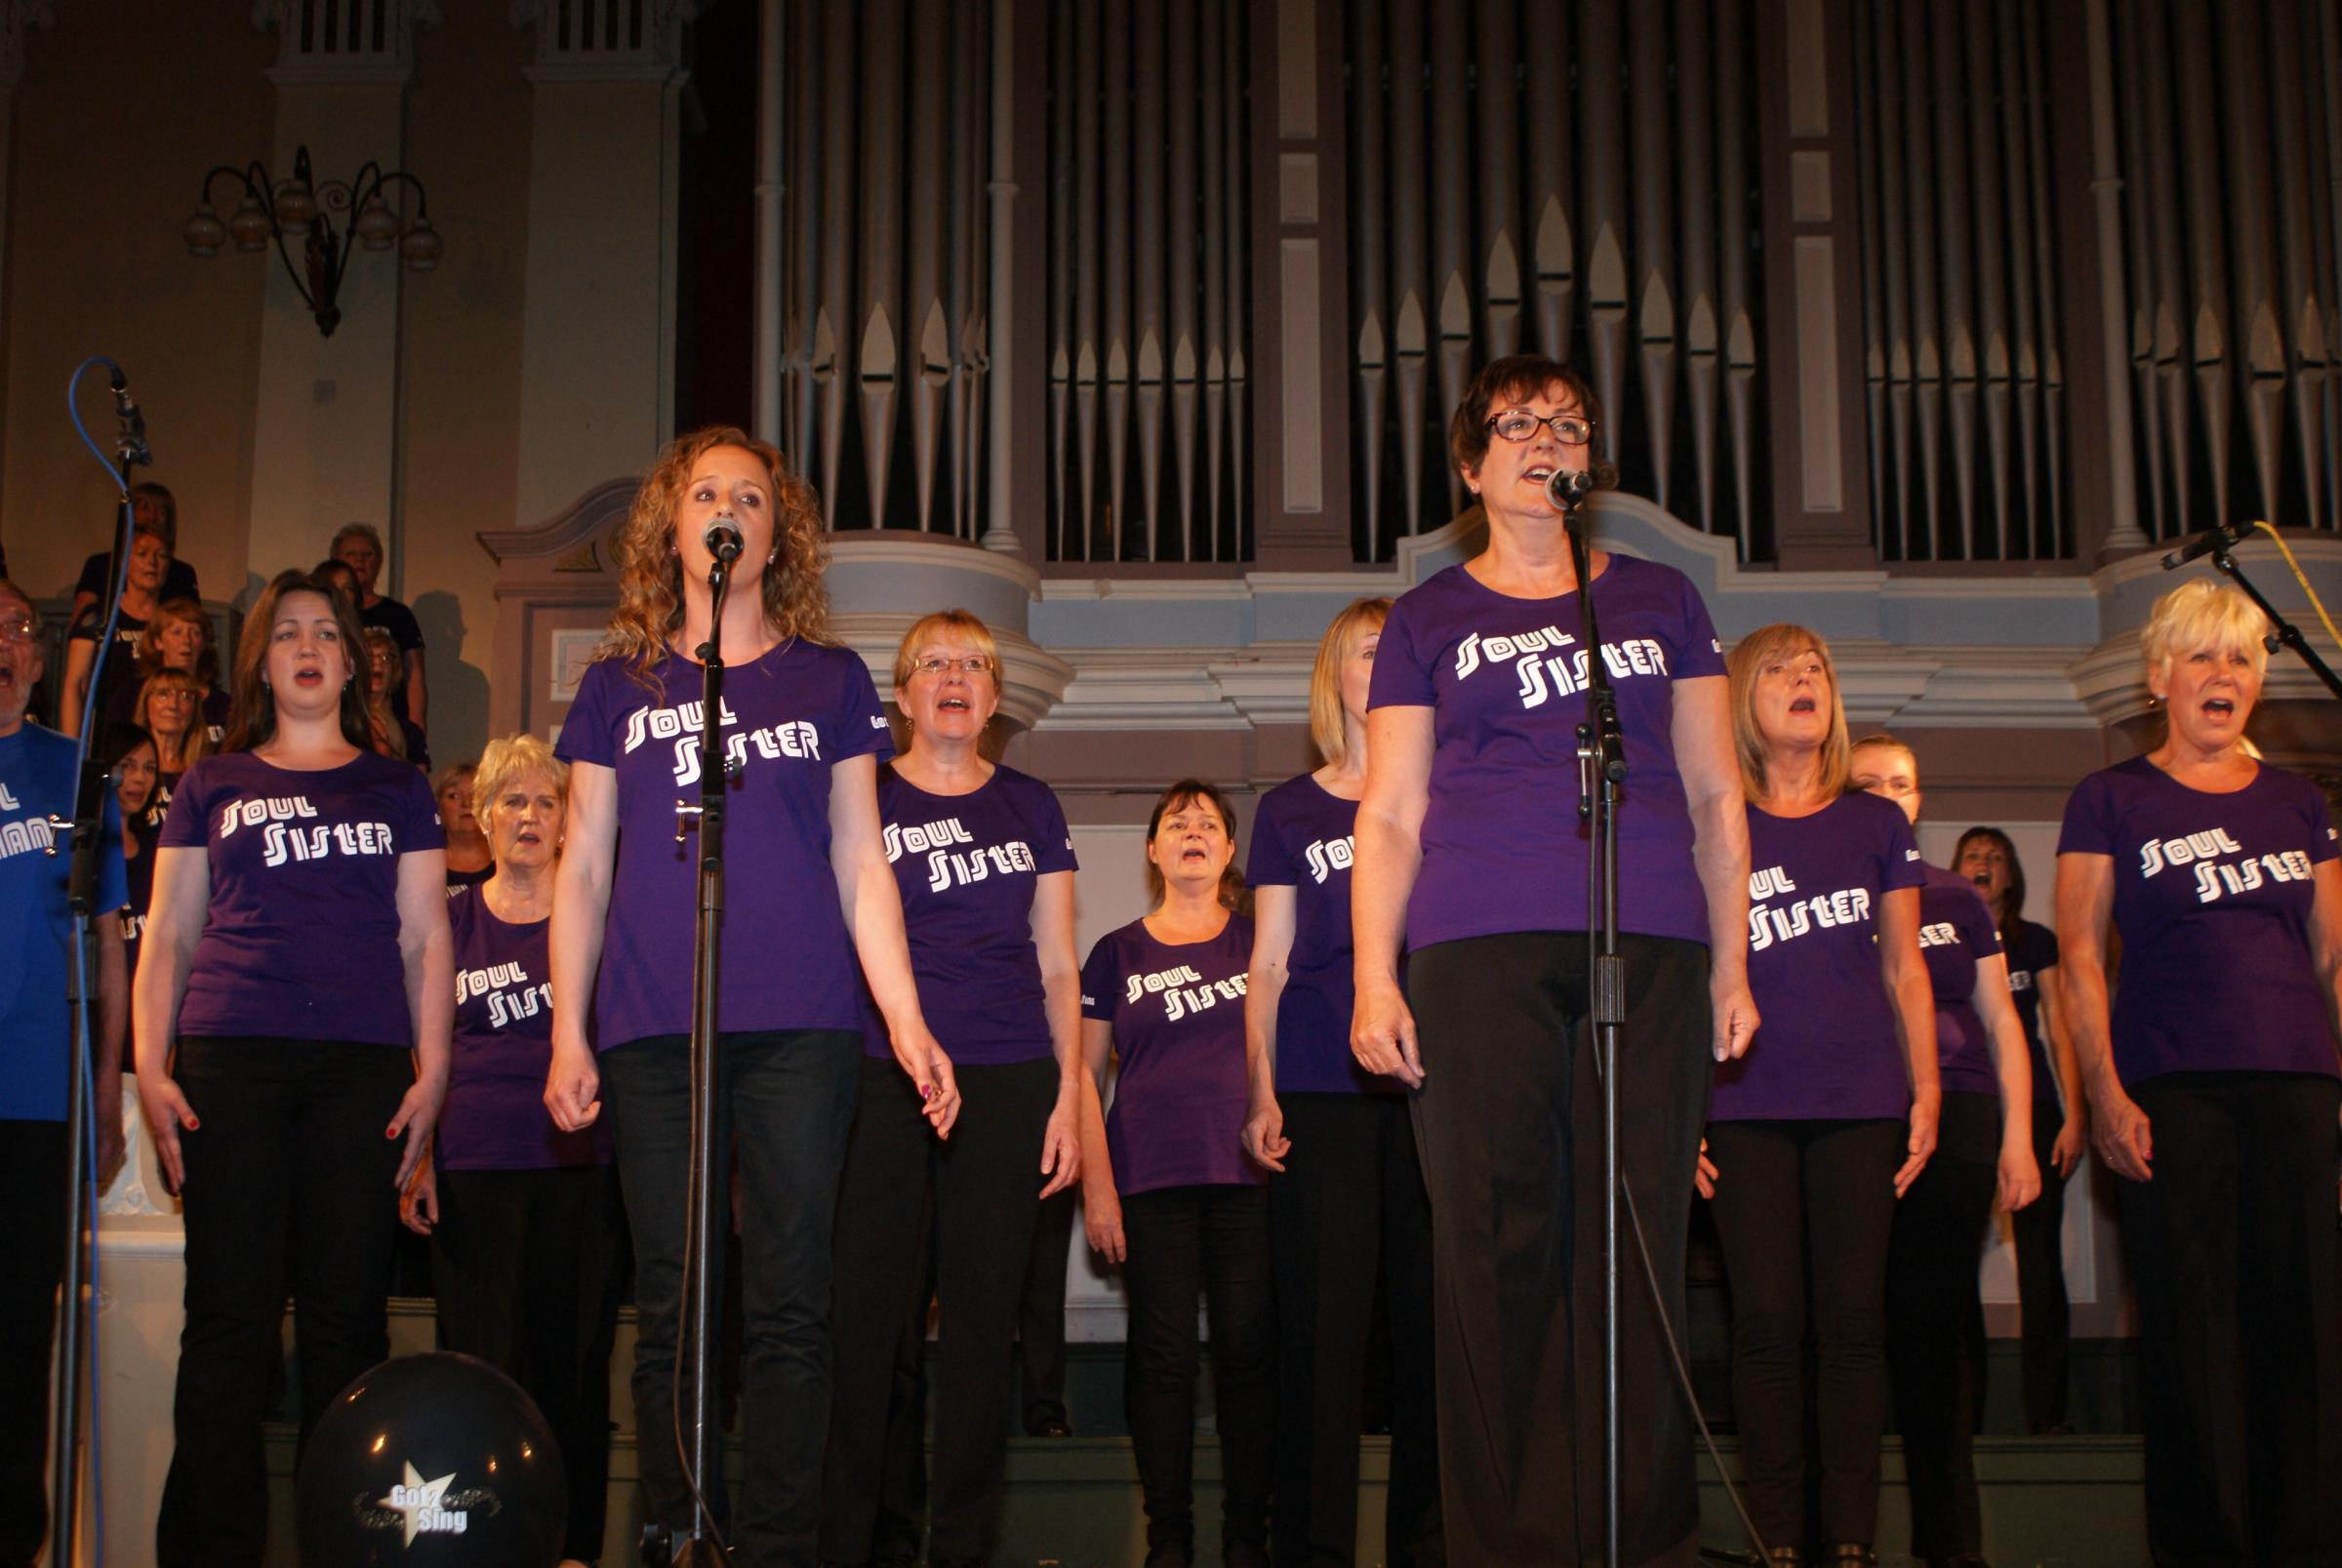 IN TUNE: Got 2 Sing belted out some soul numbers to raise money for the charity, Kemp Hospice